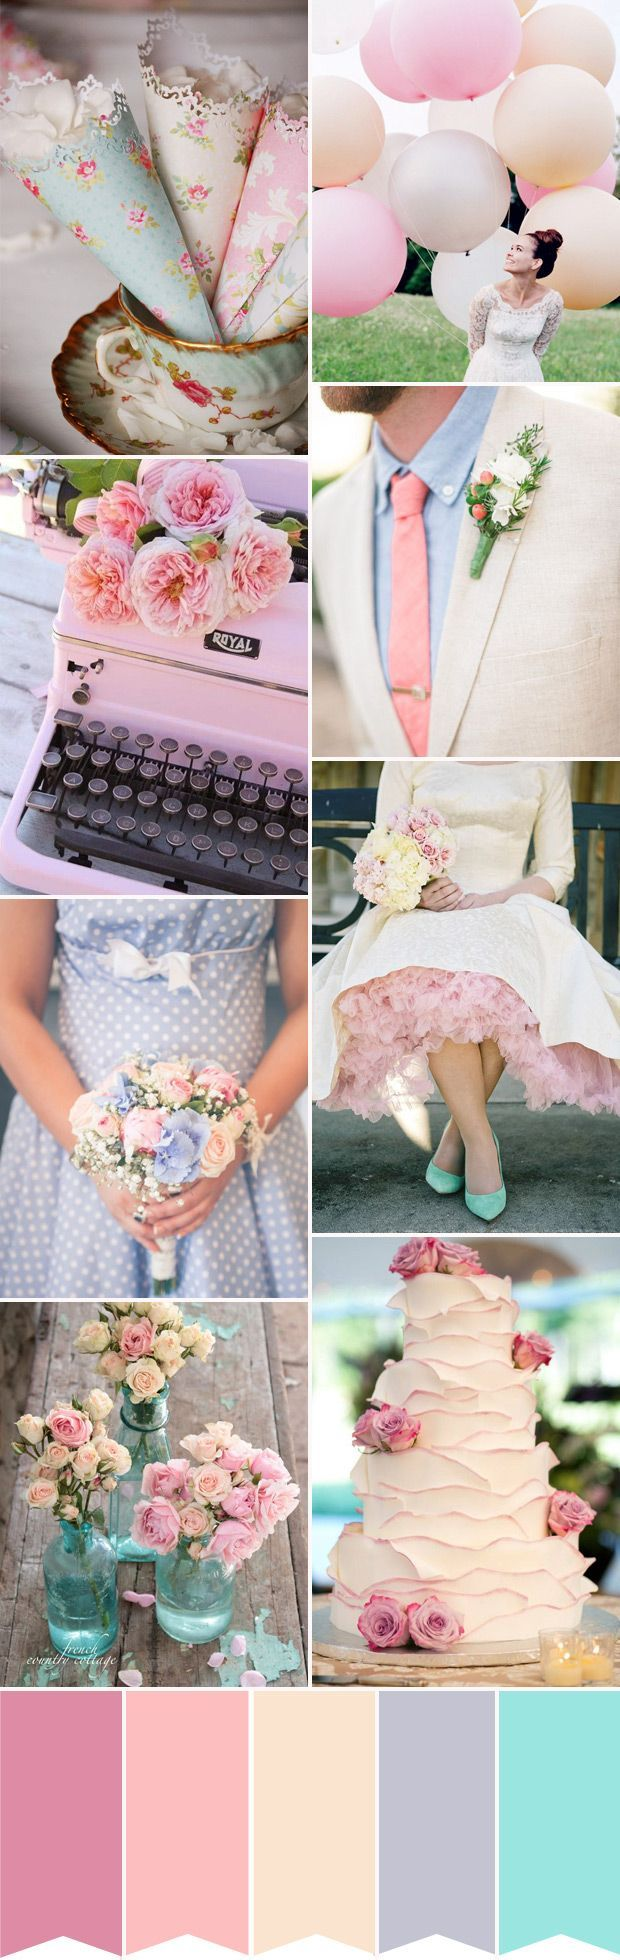 99 Best Pastel Weddings Images On Pinterest Pastel Weddings Blush